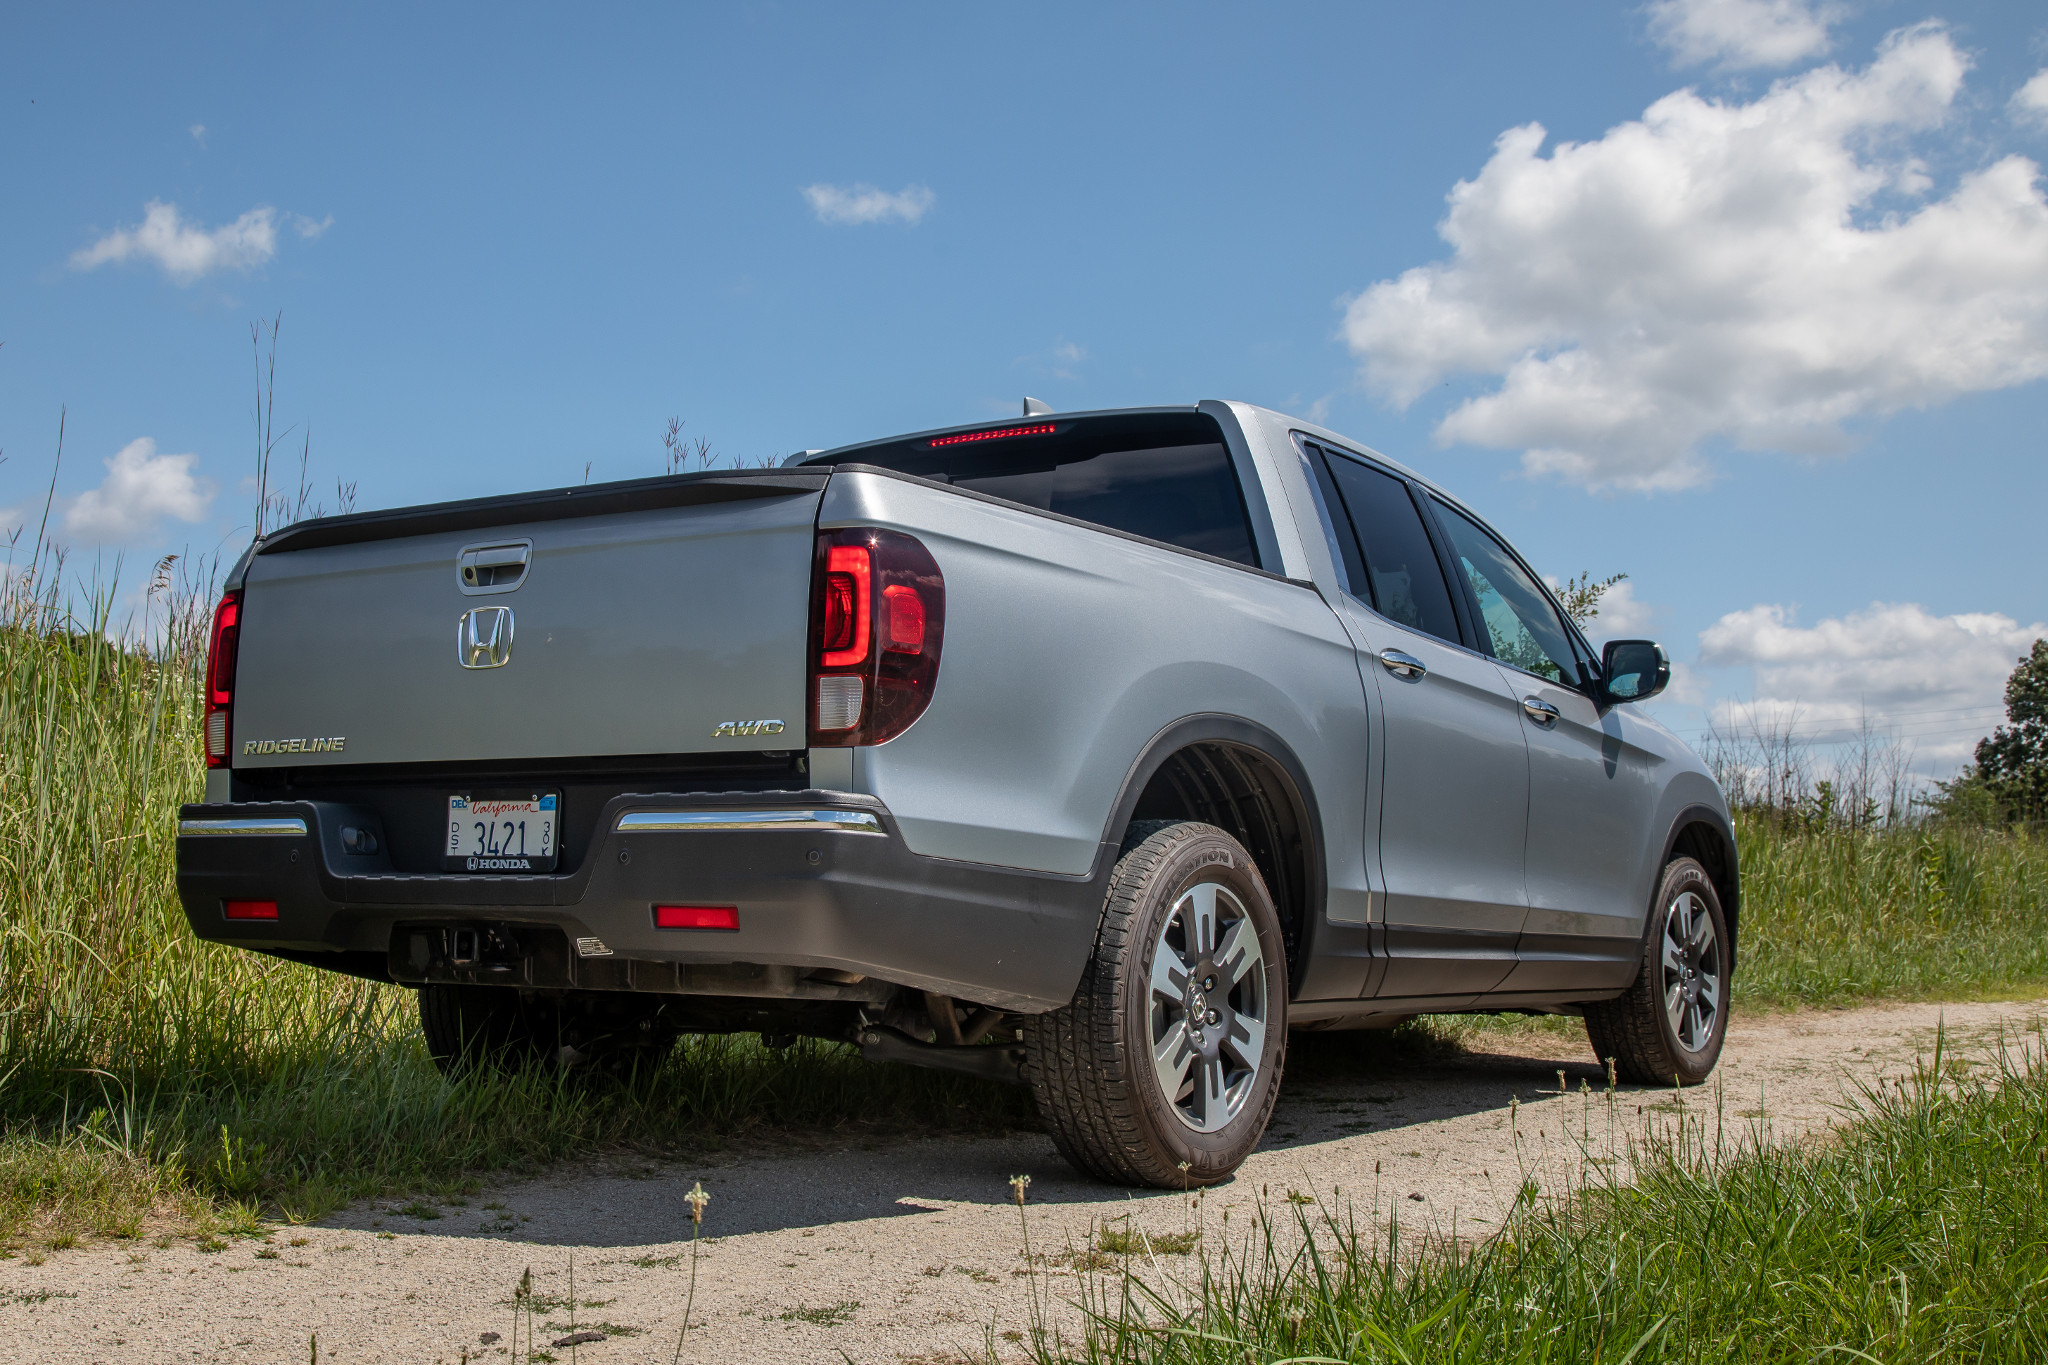 2020 Honda Ridgeline: Which Should You Buy, 2019 or 2020? via @carsdotcom